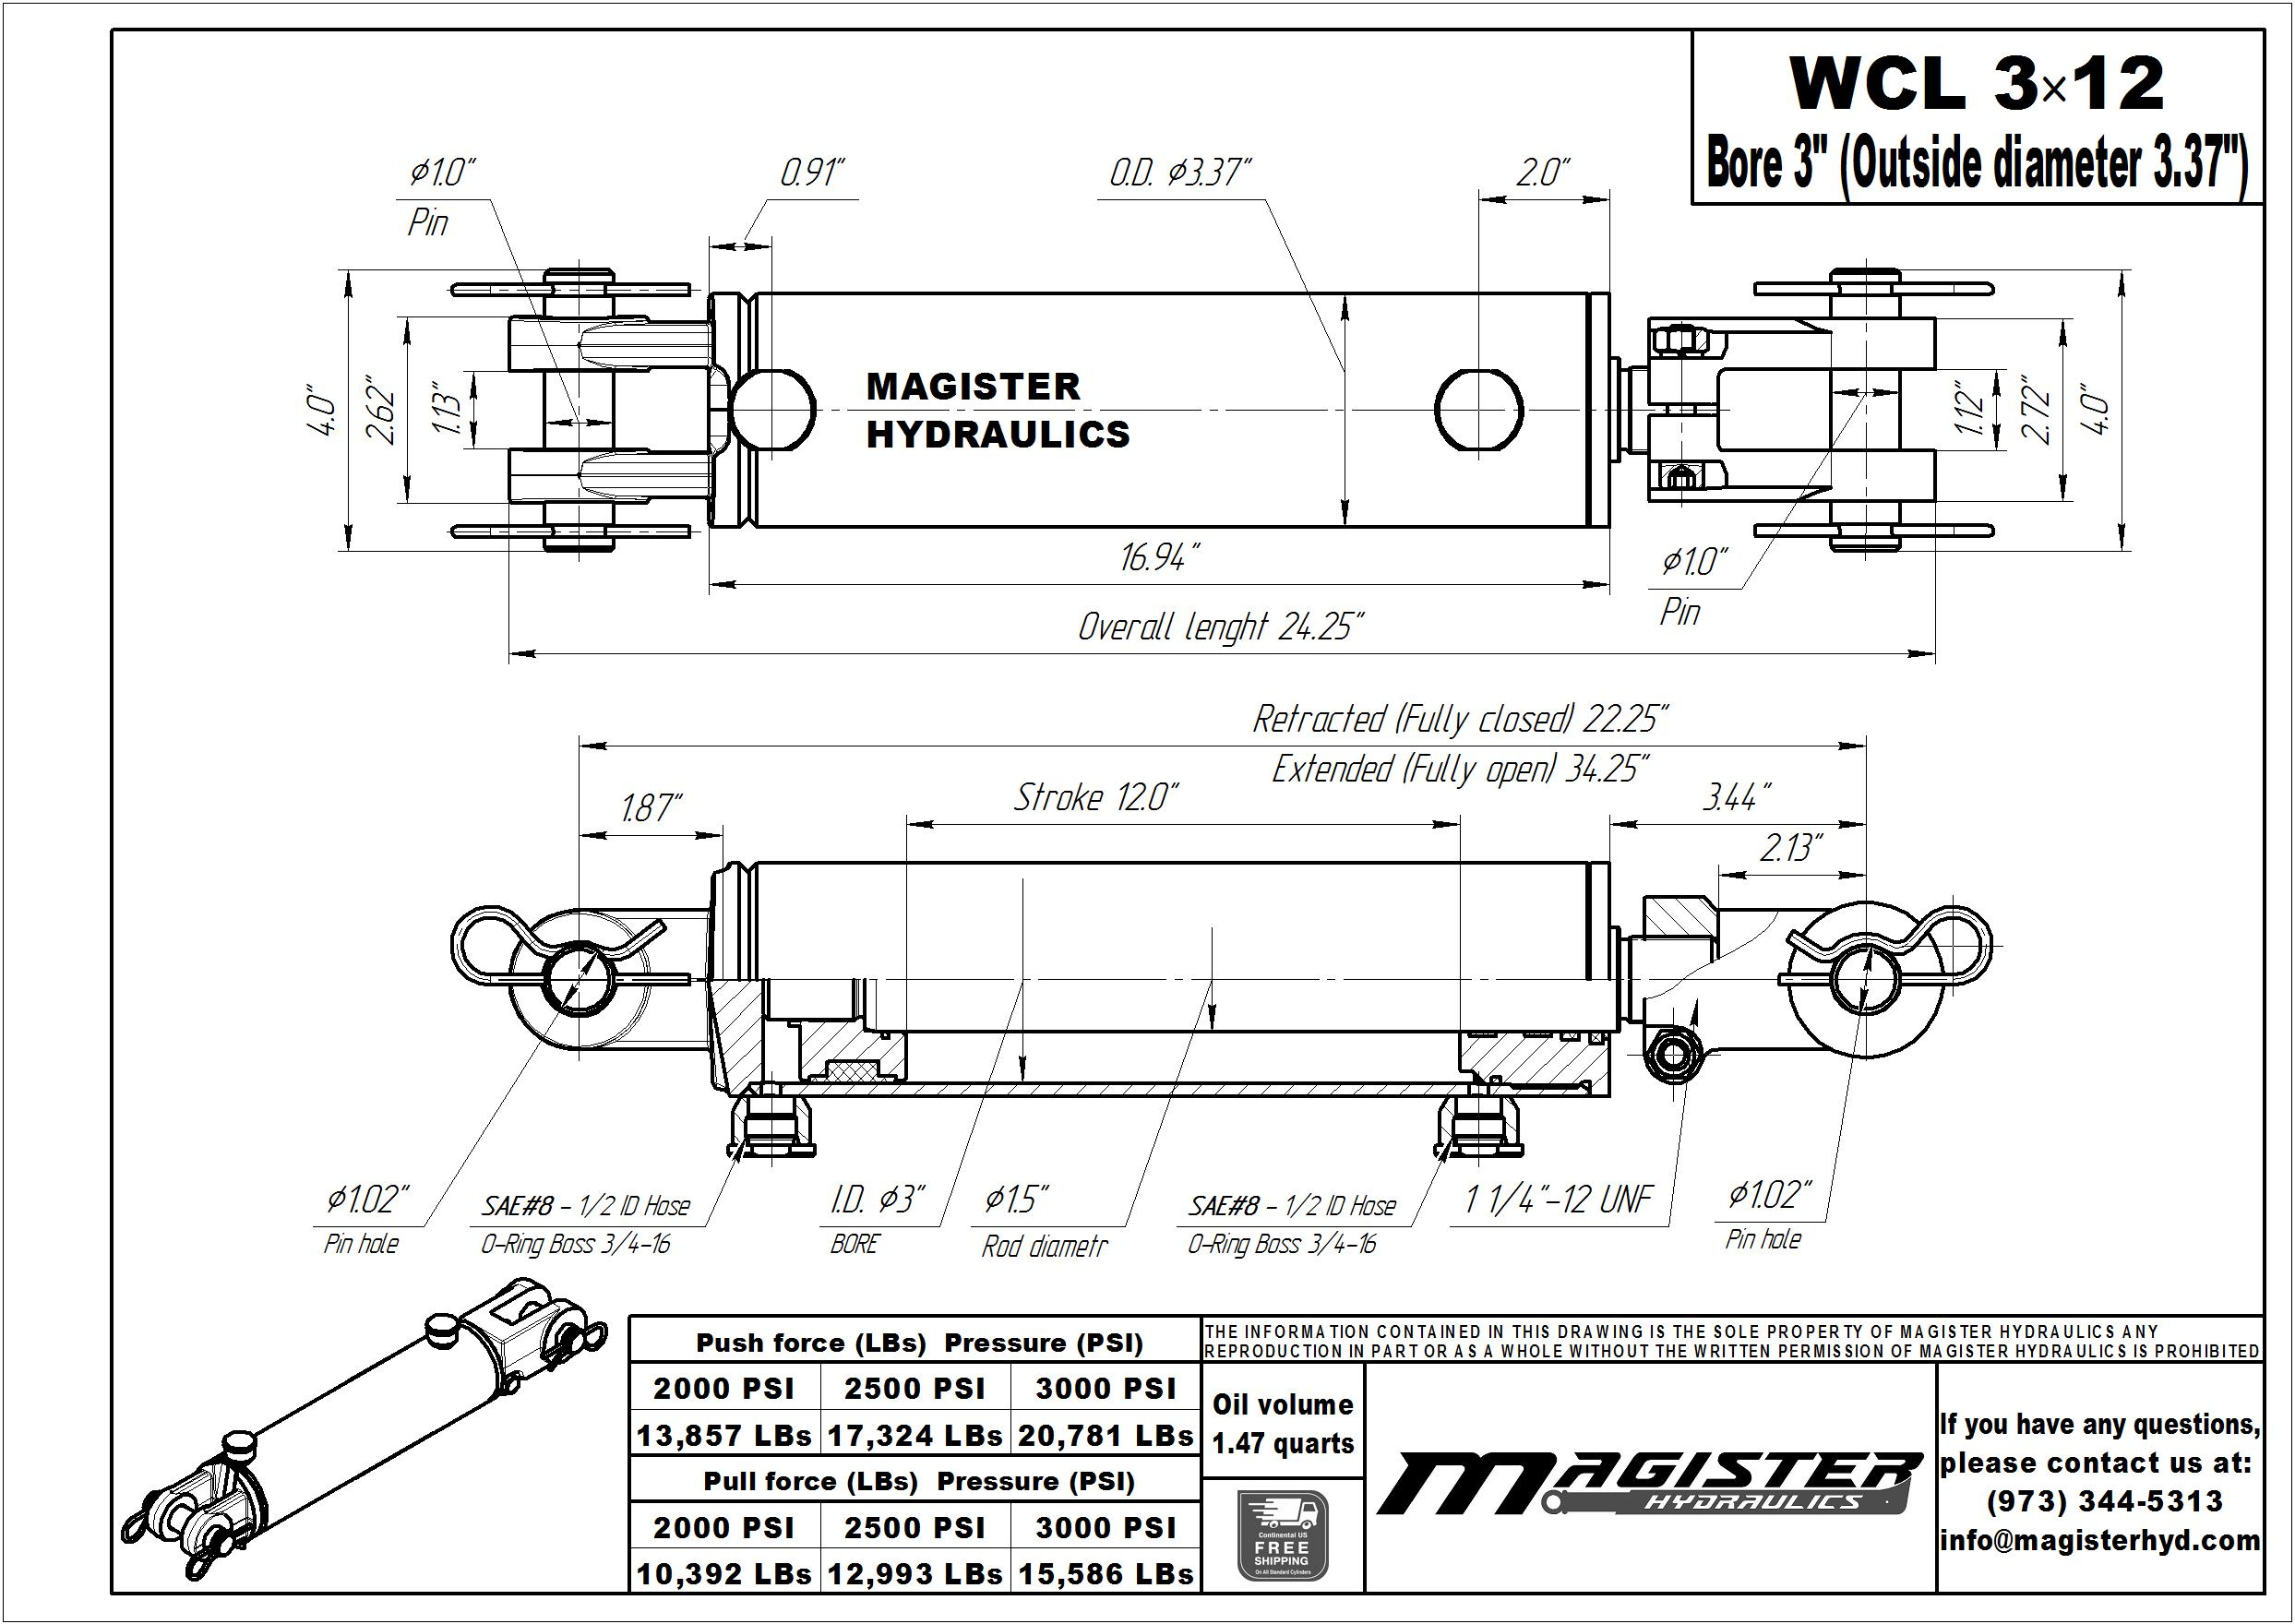 3 bore x 12 stroke hydraulic cylinder, welded clevis double acting cylinder | Magister Hydraulics